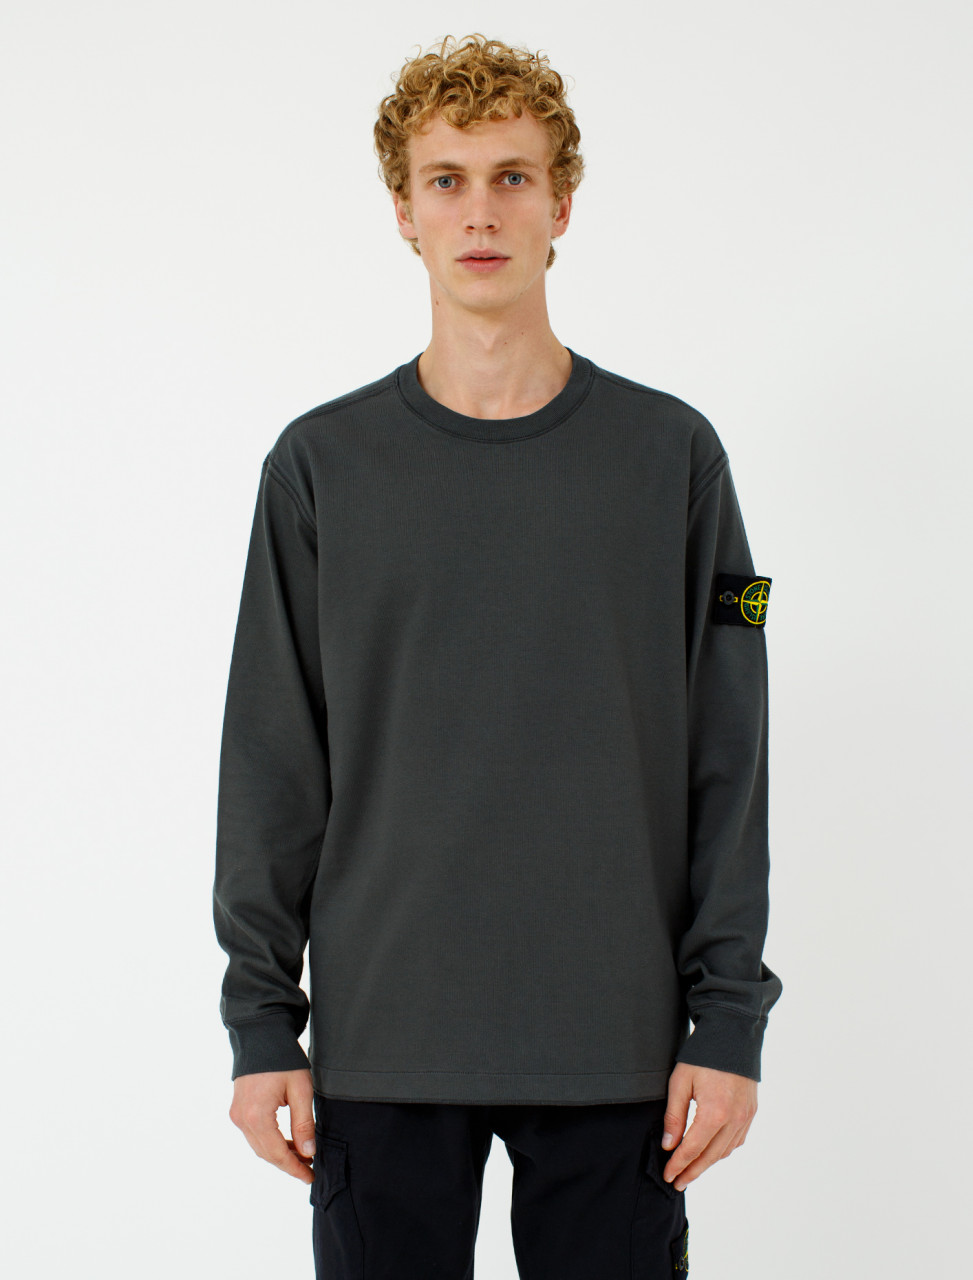 Sweatshirt in Dark Grey